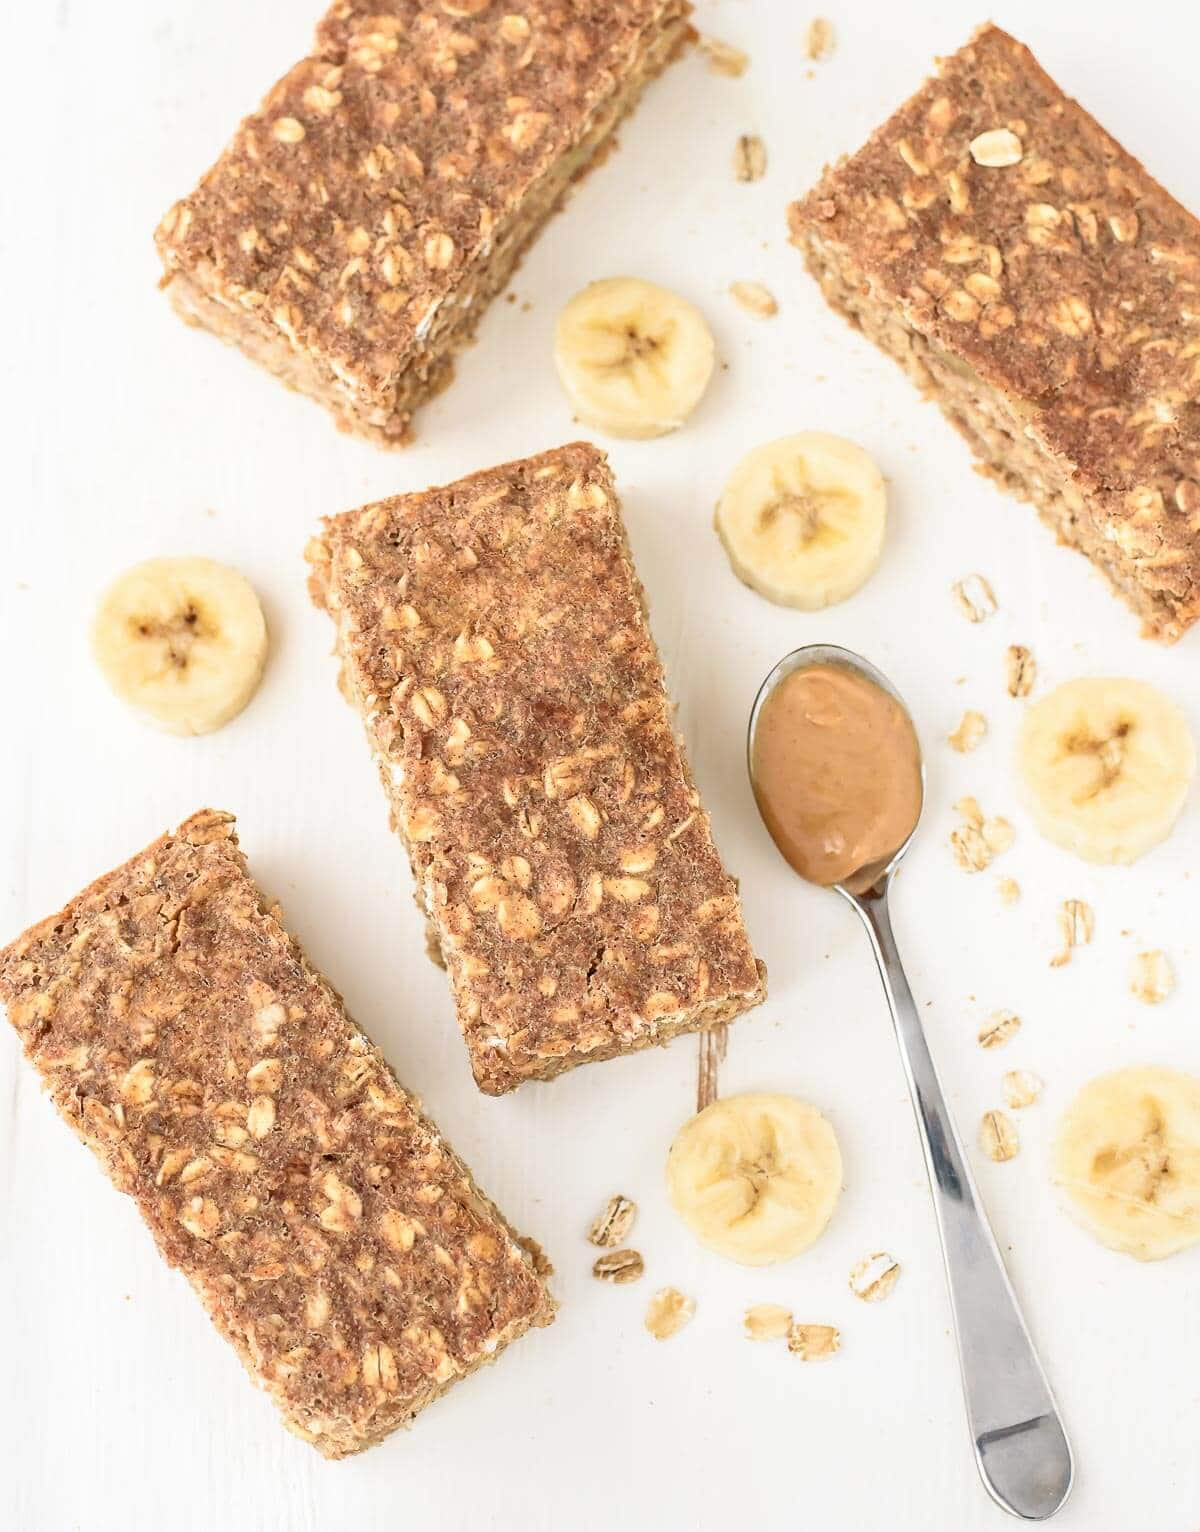 4 Peanut Butter and Honey Oatmeal Breakfast Bars on a white countertop